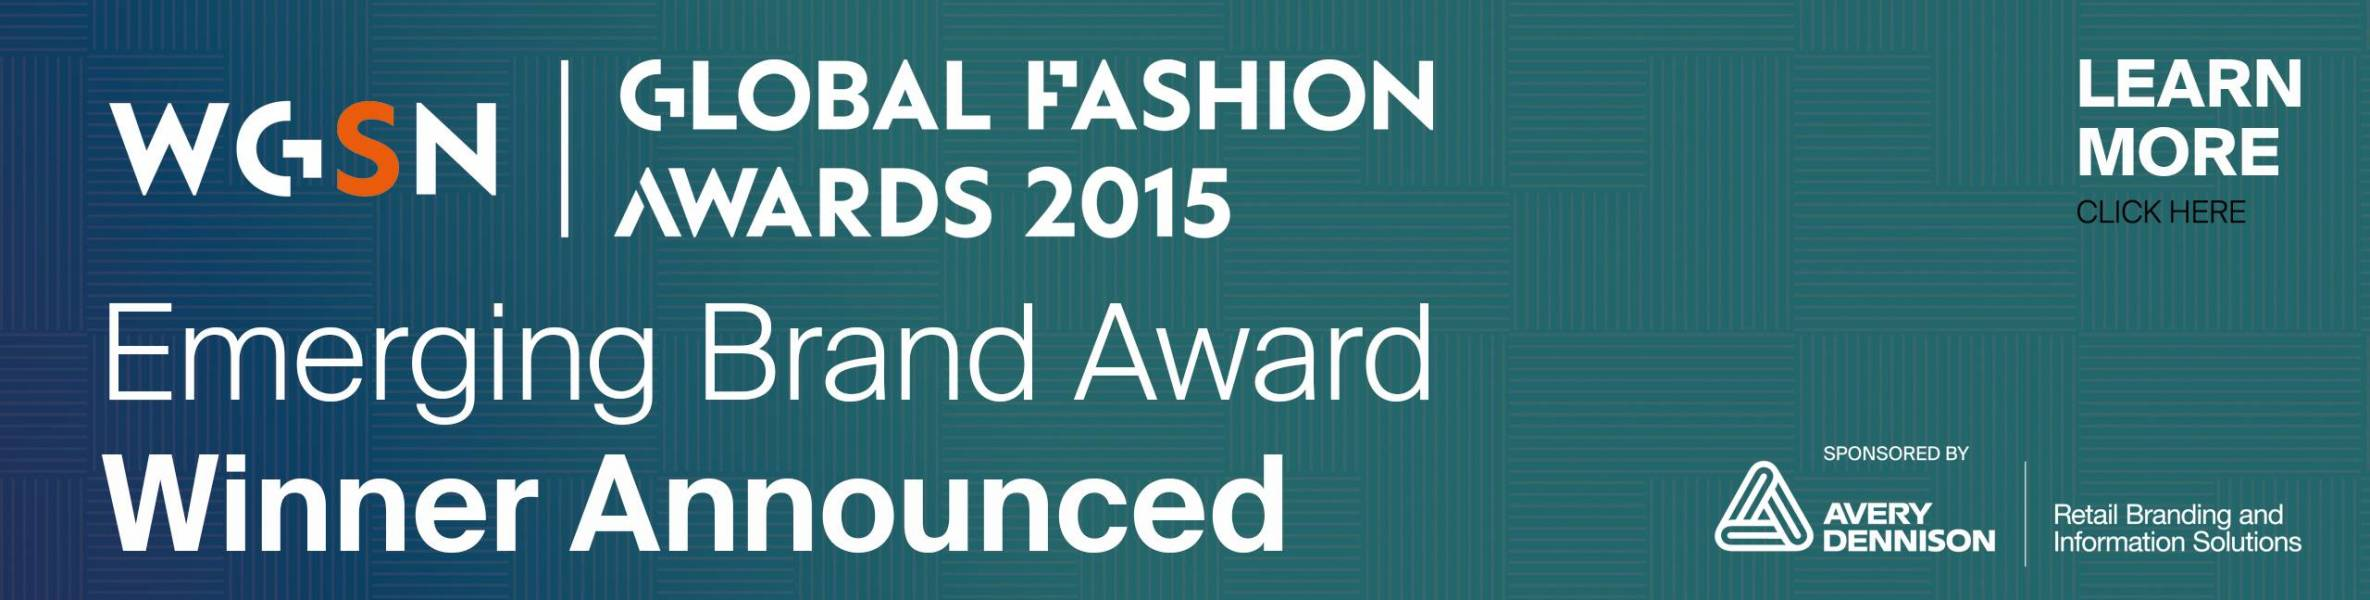 AVERY DENNISON RBIS EMERGING BRAND AWARD AT WGSN GLOBAL FASHION AWARDS 2015